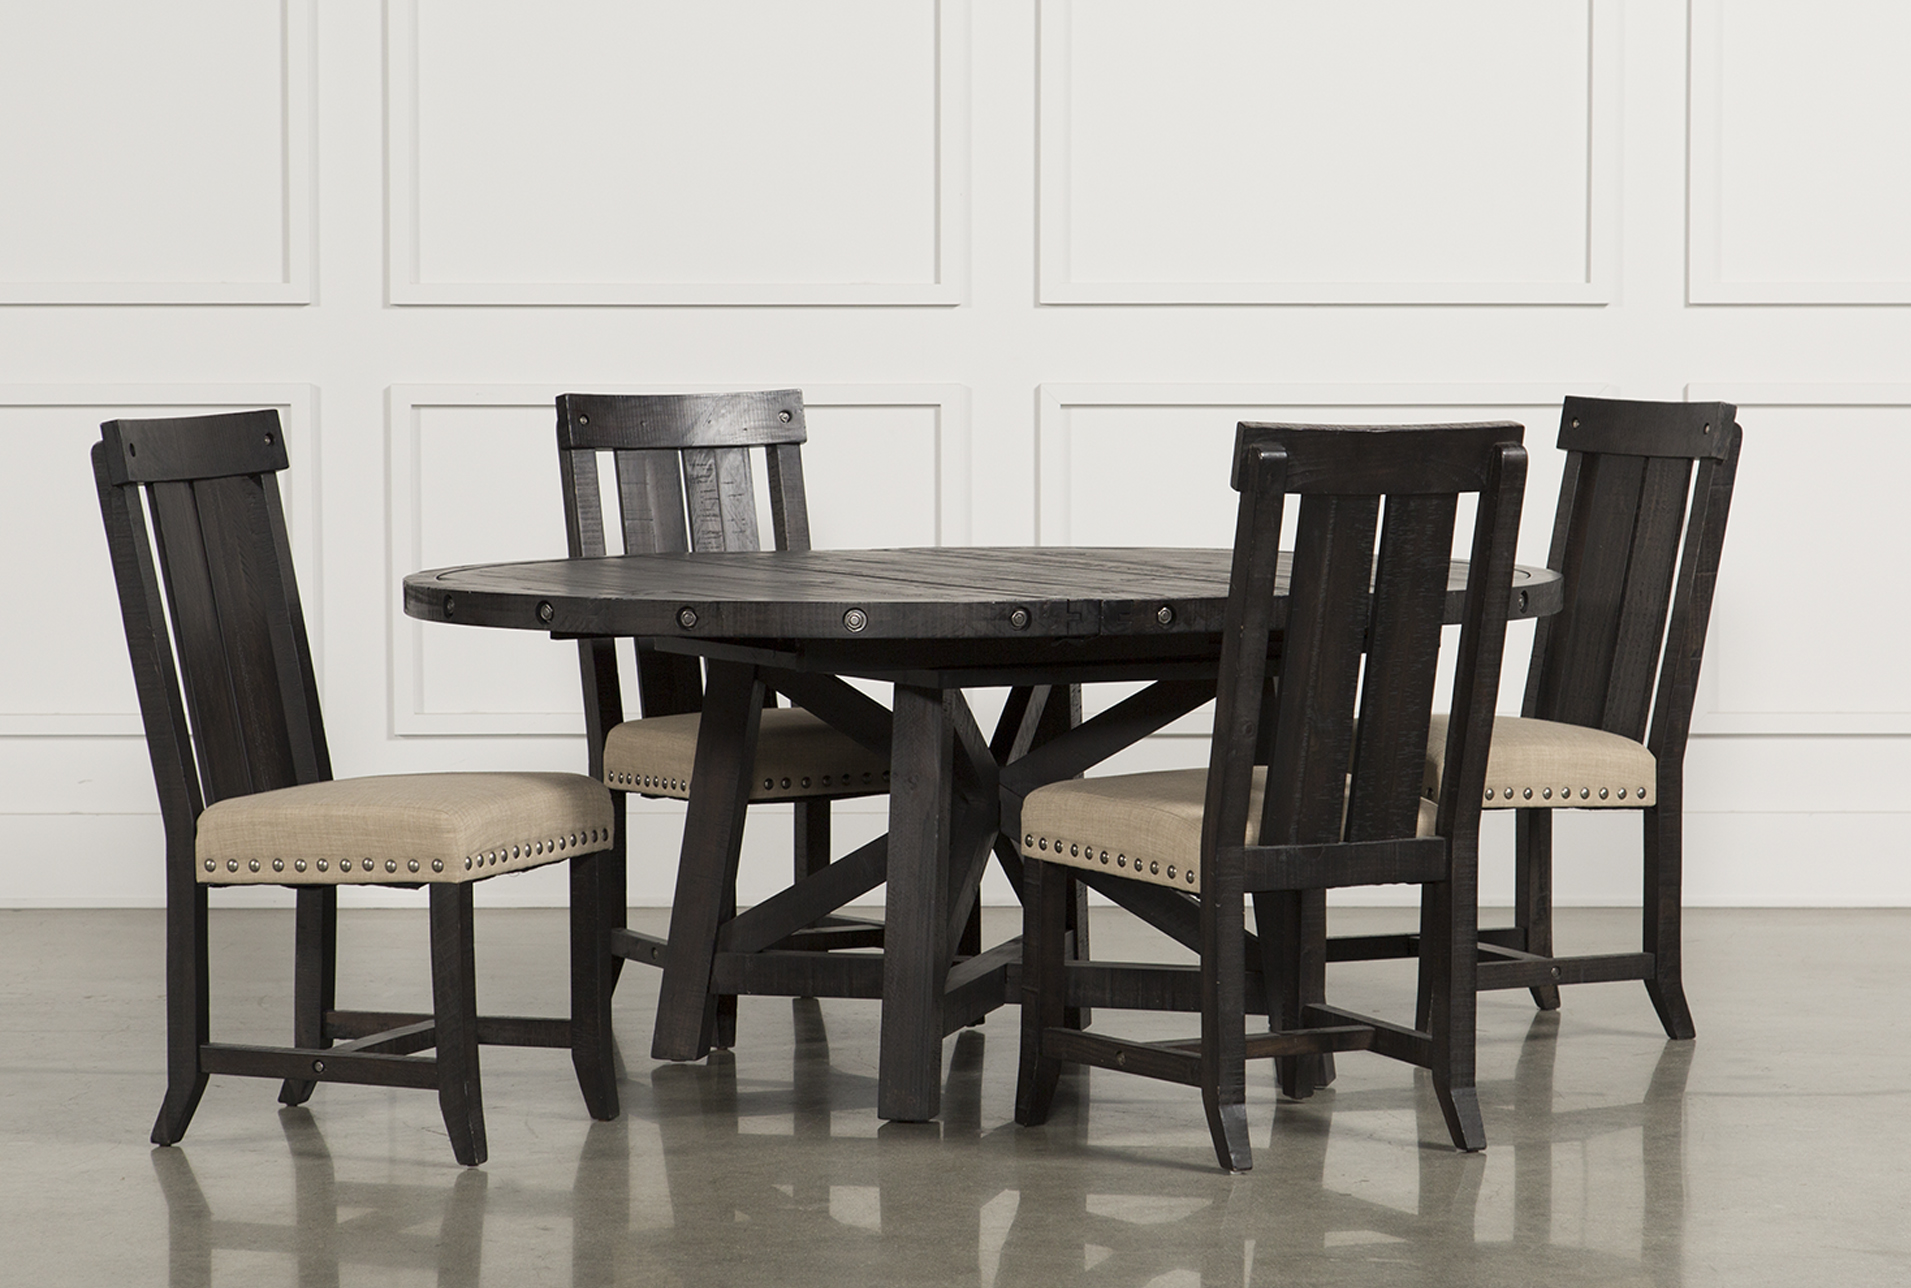 Good Jaxon 5 Piece Extension Round Dining Set W/Wood Chairs (Qty: 1) Has Been  Successfully Added To Your Cart.